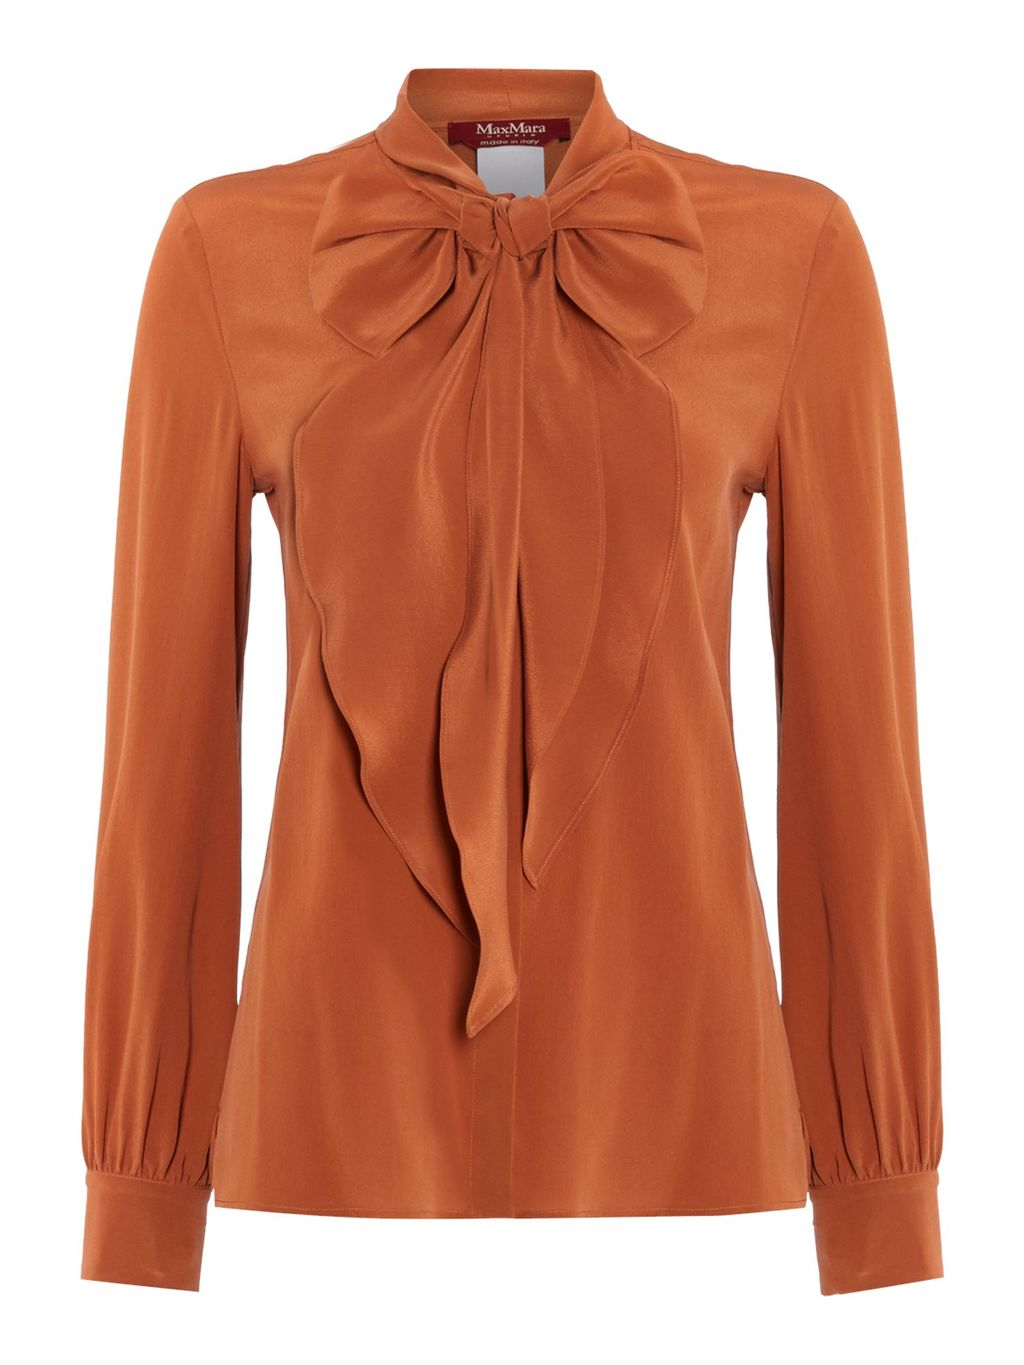 Maldive Long Sleeve Silk Pussy Bow Blouse, Terracotta - pattern: plain; neckline: pussy bow; style: blouse; predominant colour: terracotta; occasions: evening; length: standard; fibres: silk - 100%; fit: body skimming; sleeve length: long sleeve; sleeve style: standard; texture group: silky - light; pattern type: fabric; season: a/w 2016; wardrobe: event